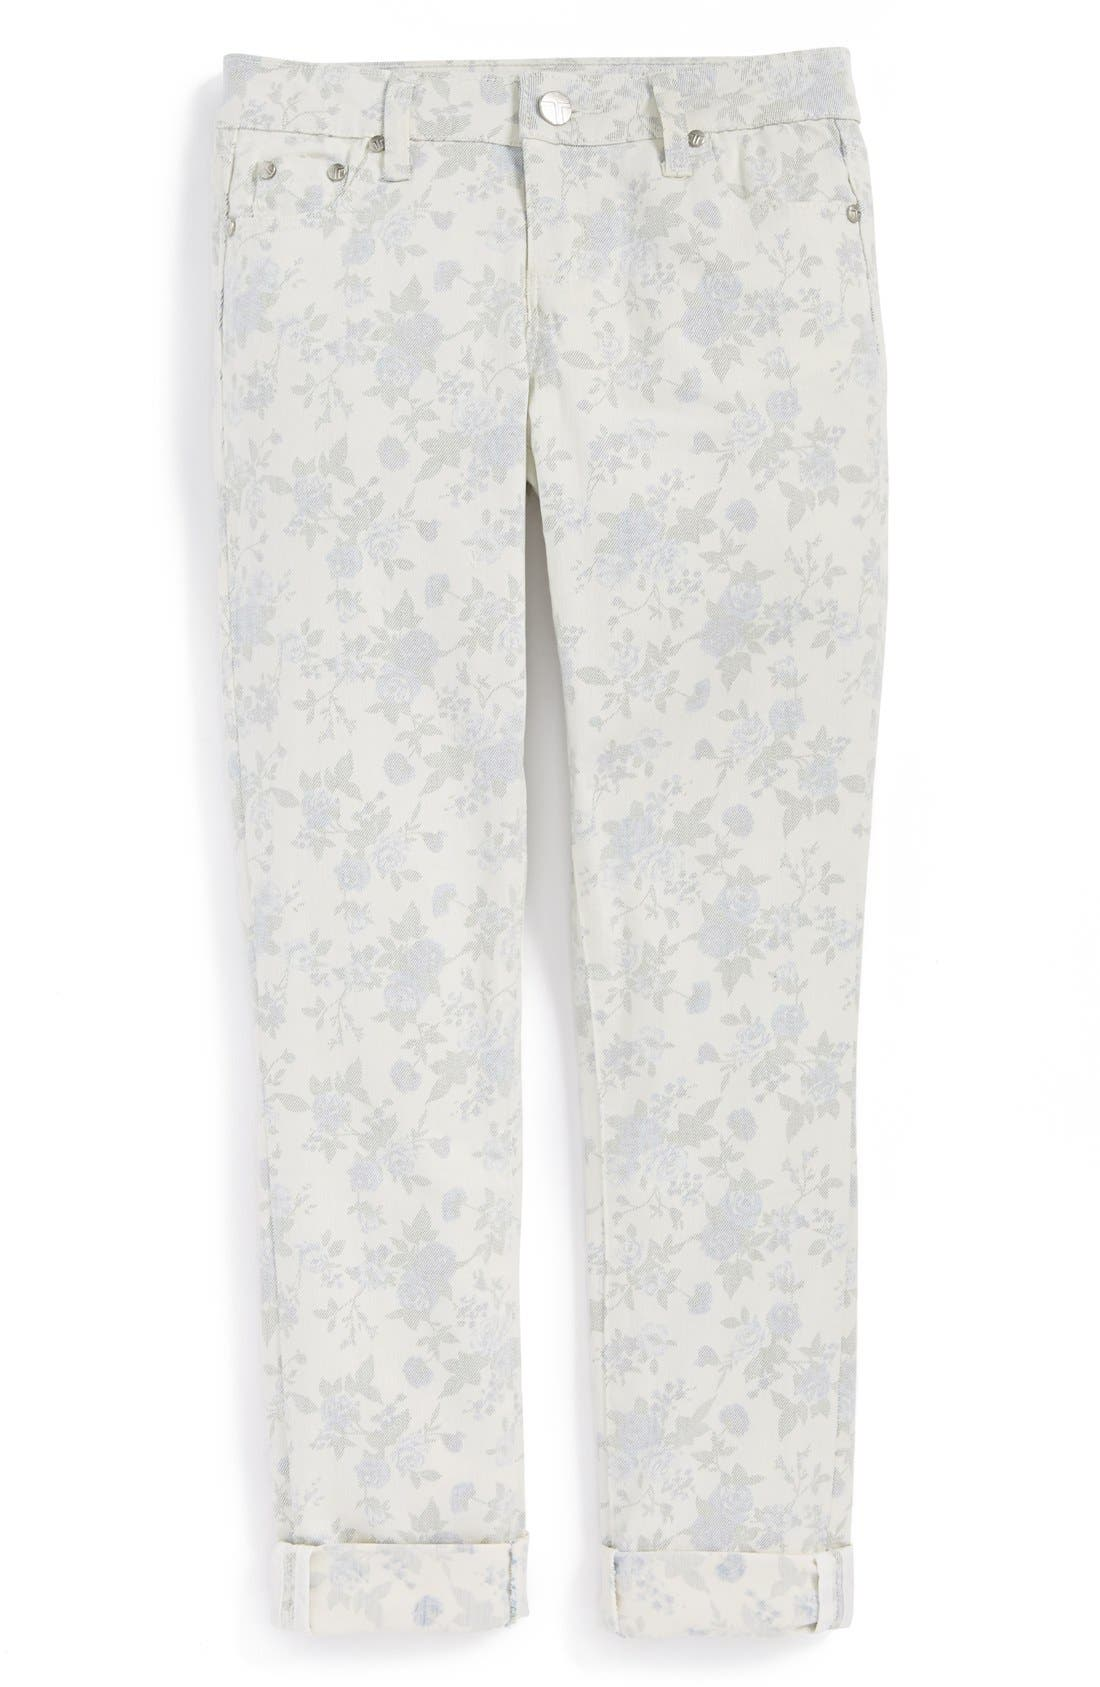 Alternate Image 2  - Tractr Faded Floral Skinny Jeans (Big Girls)